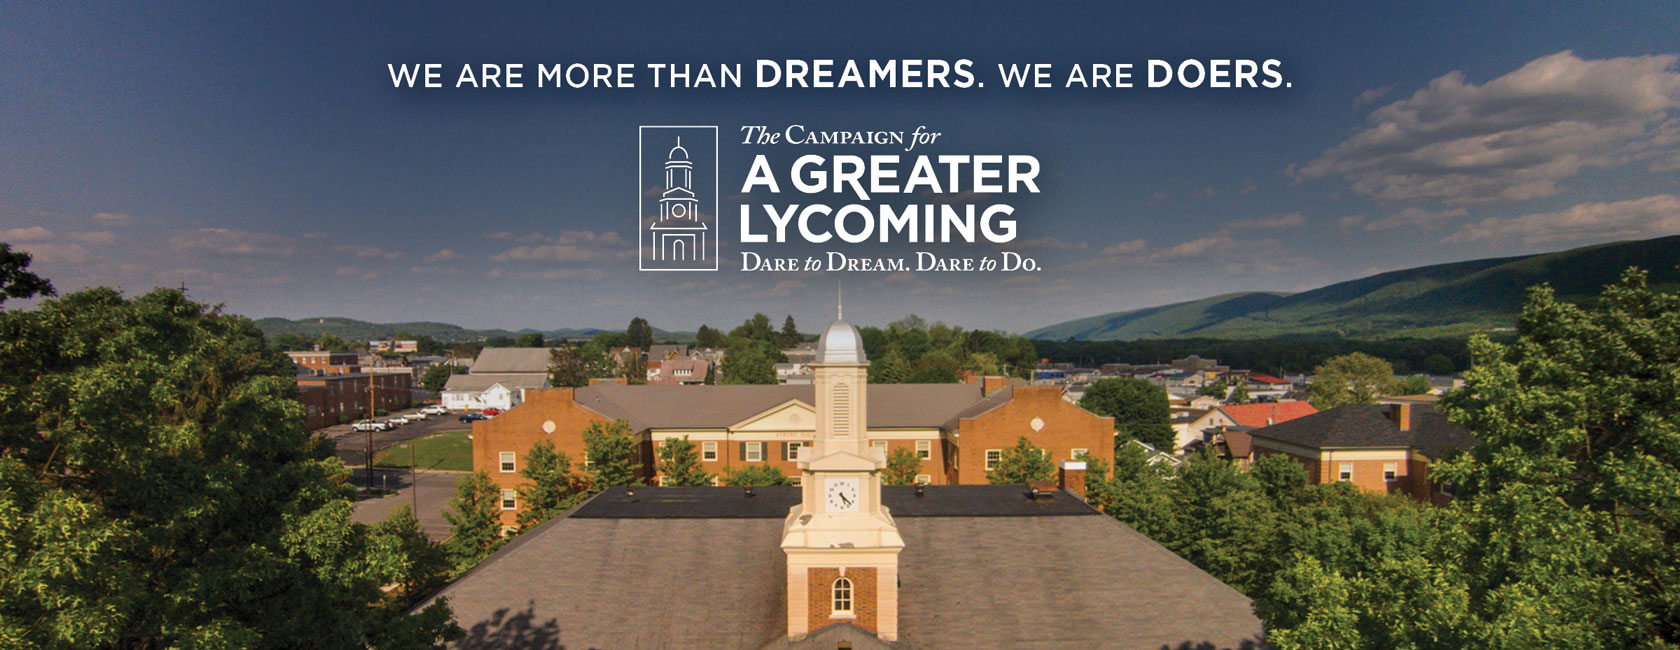 We are more than dreamers. We are doers. The Campaign for a Greater Lyycoming: Dare to Dream. Dare to Do.